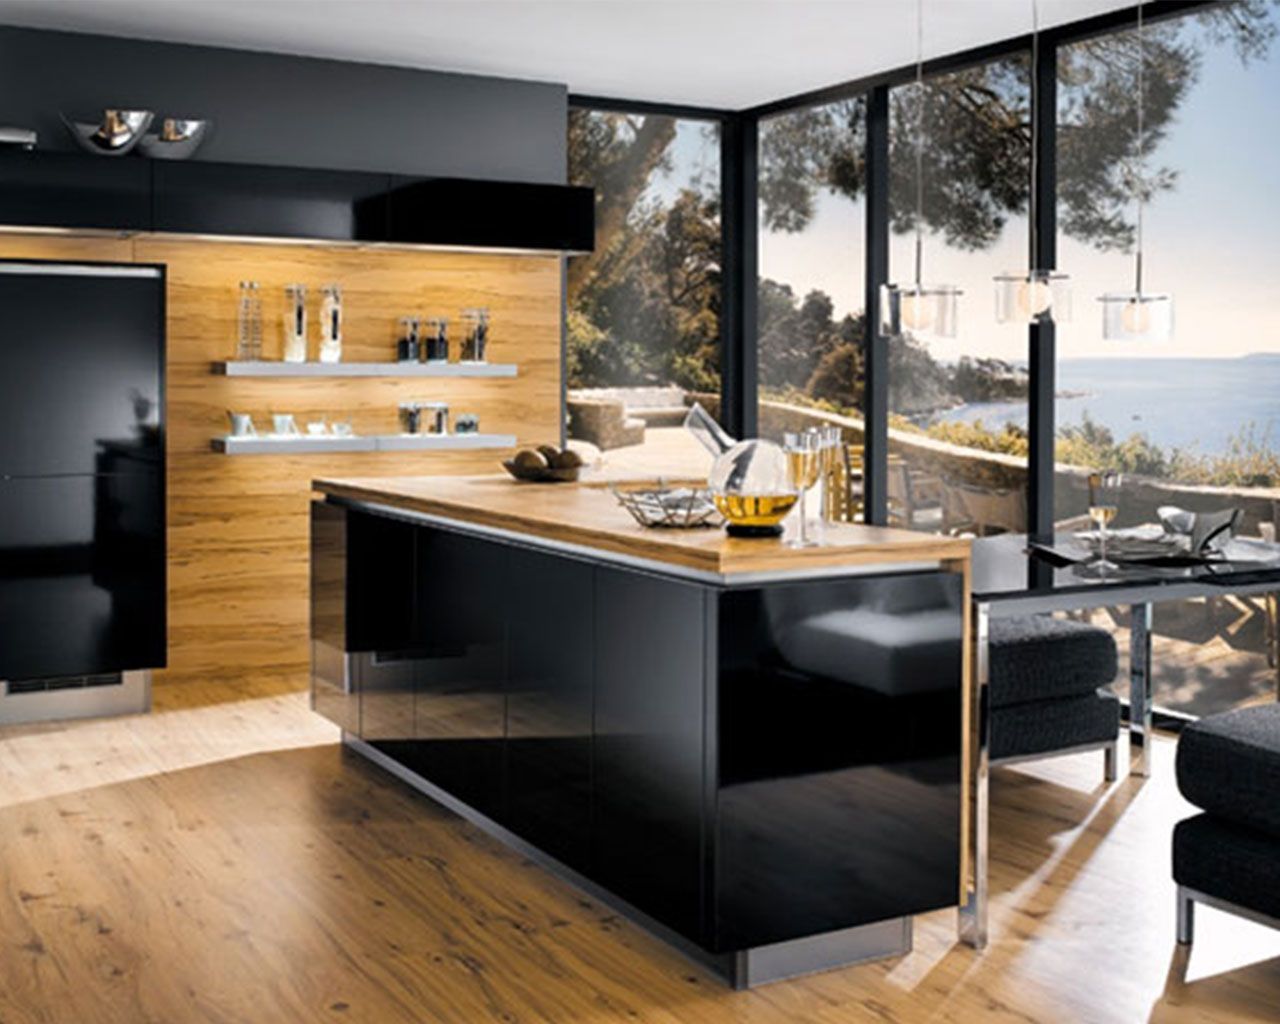 Kitchen Designers Inspiration Understanding Modular Kitchen Designs  Kitchen Design Kitchens Inspiration Design